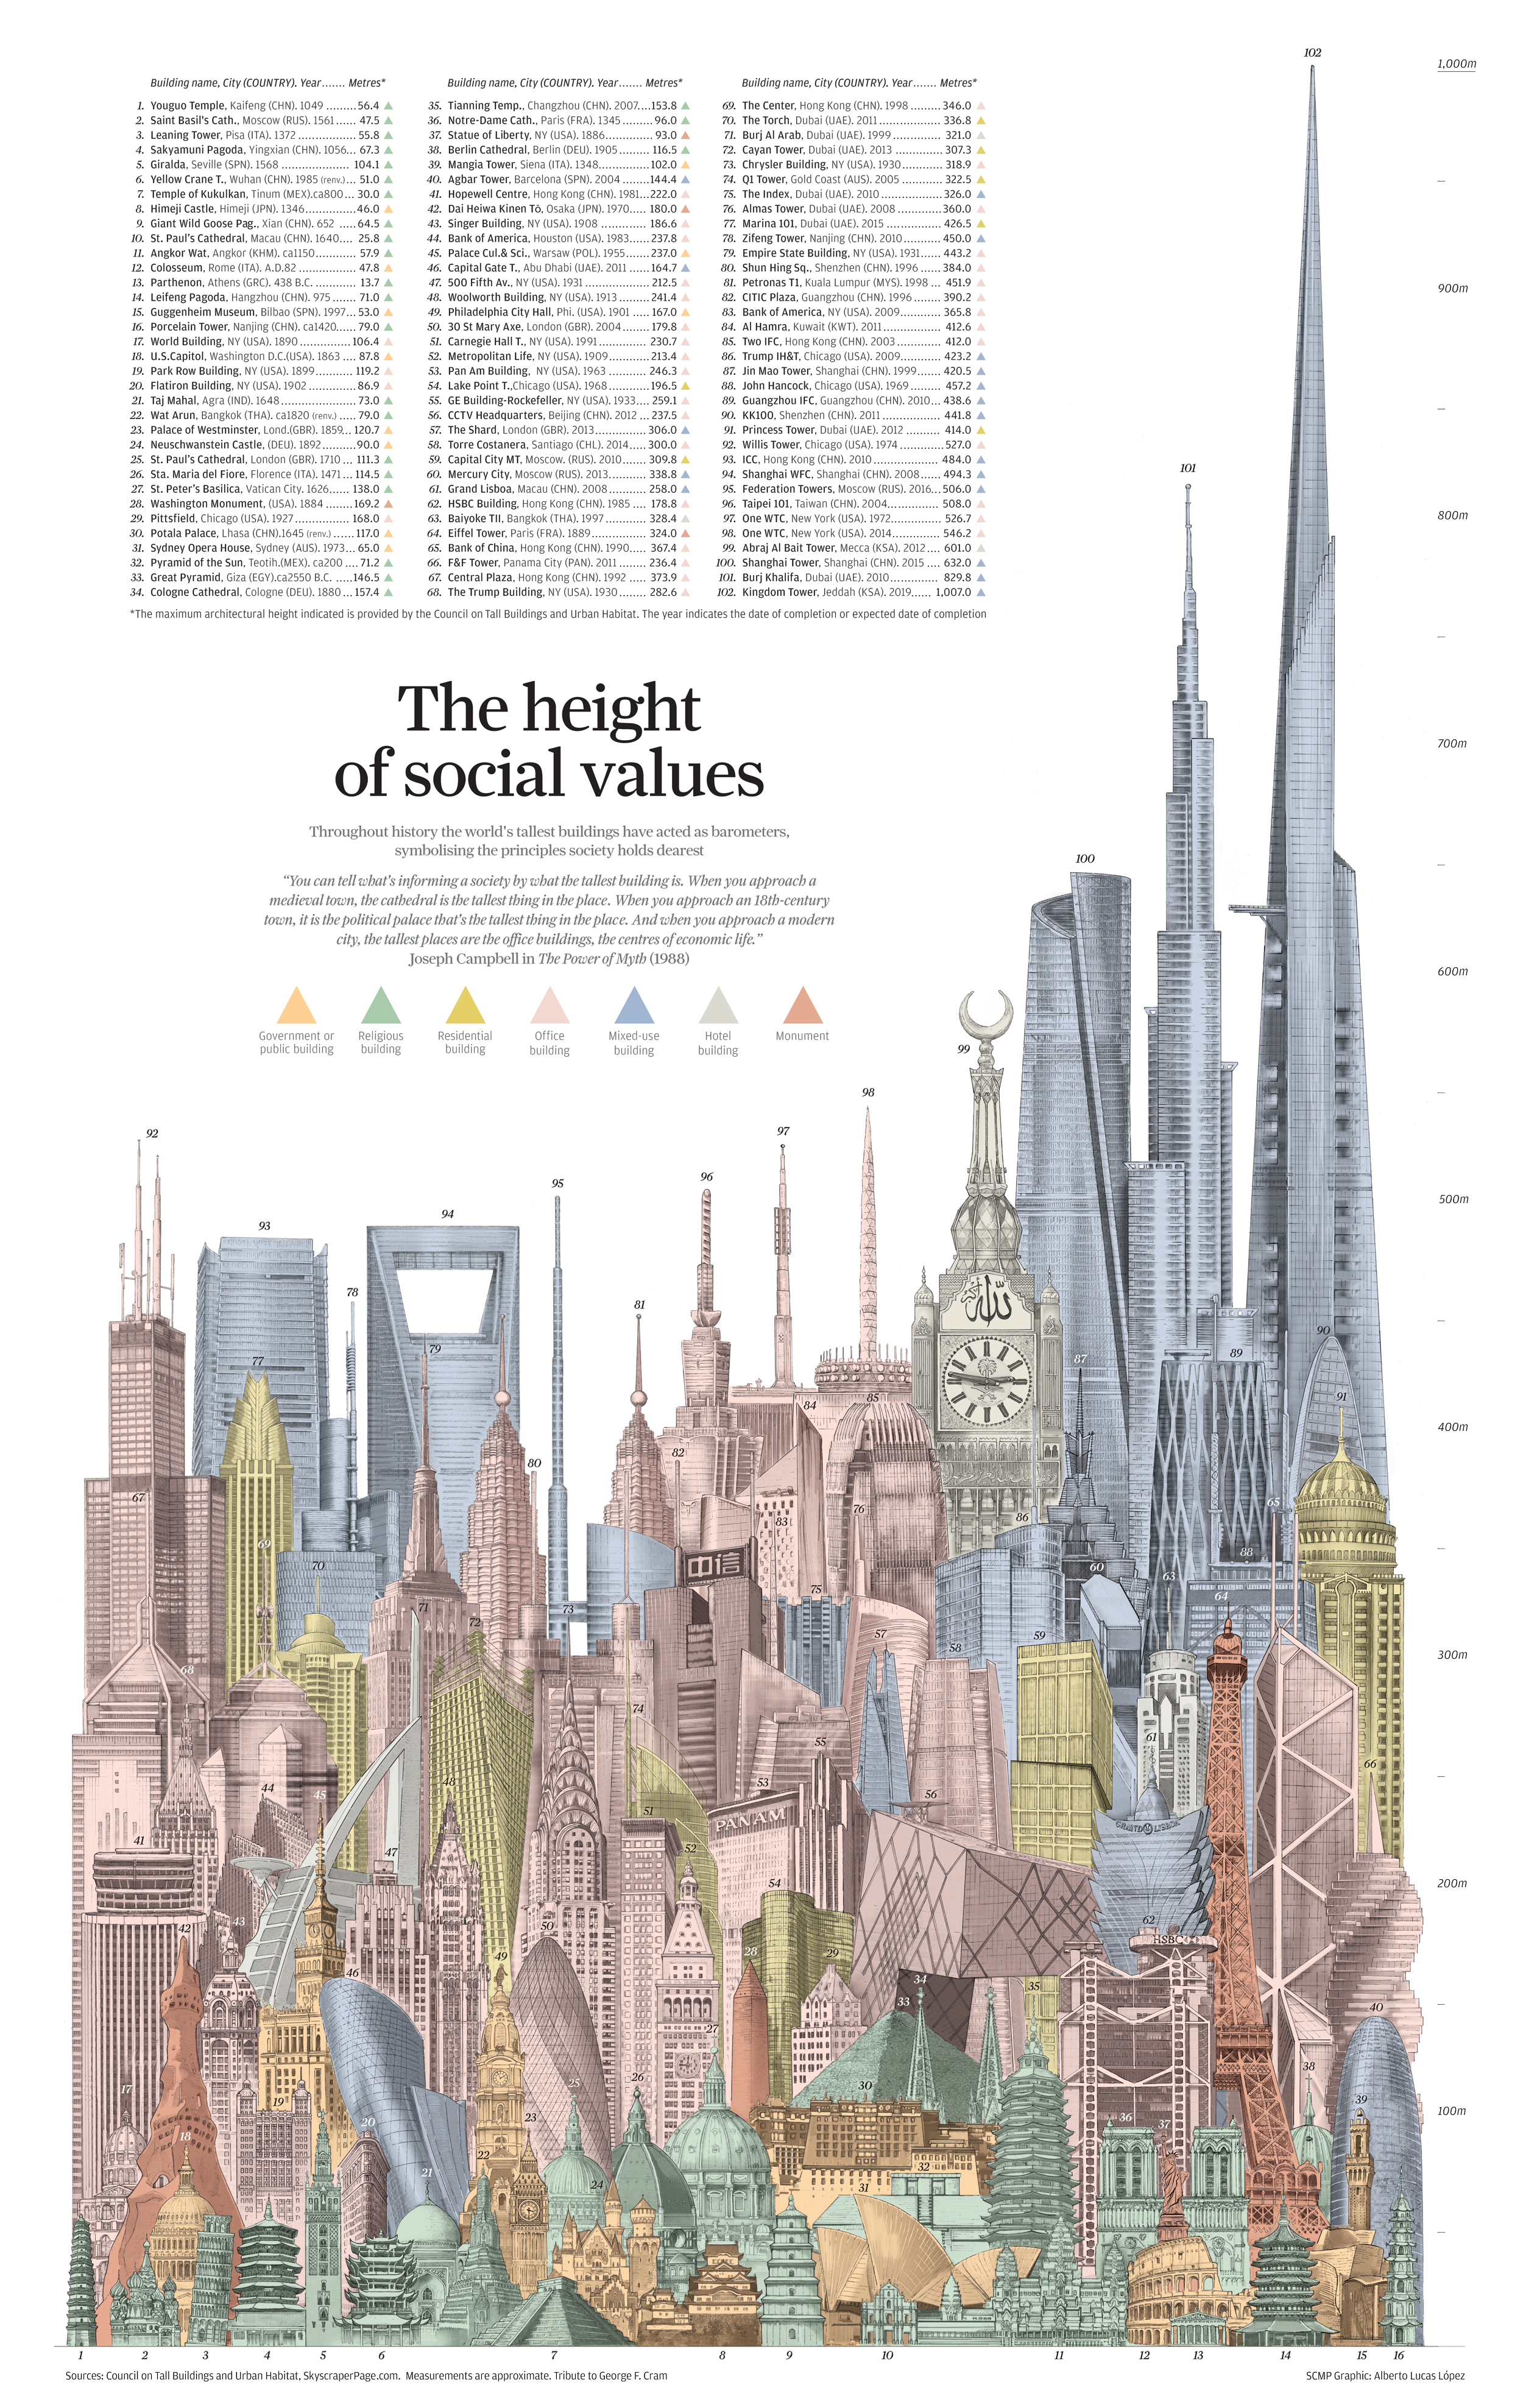 The height of social values  Design Infographic  Data